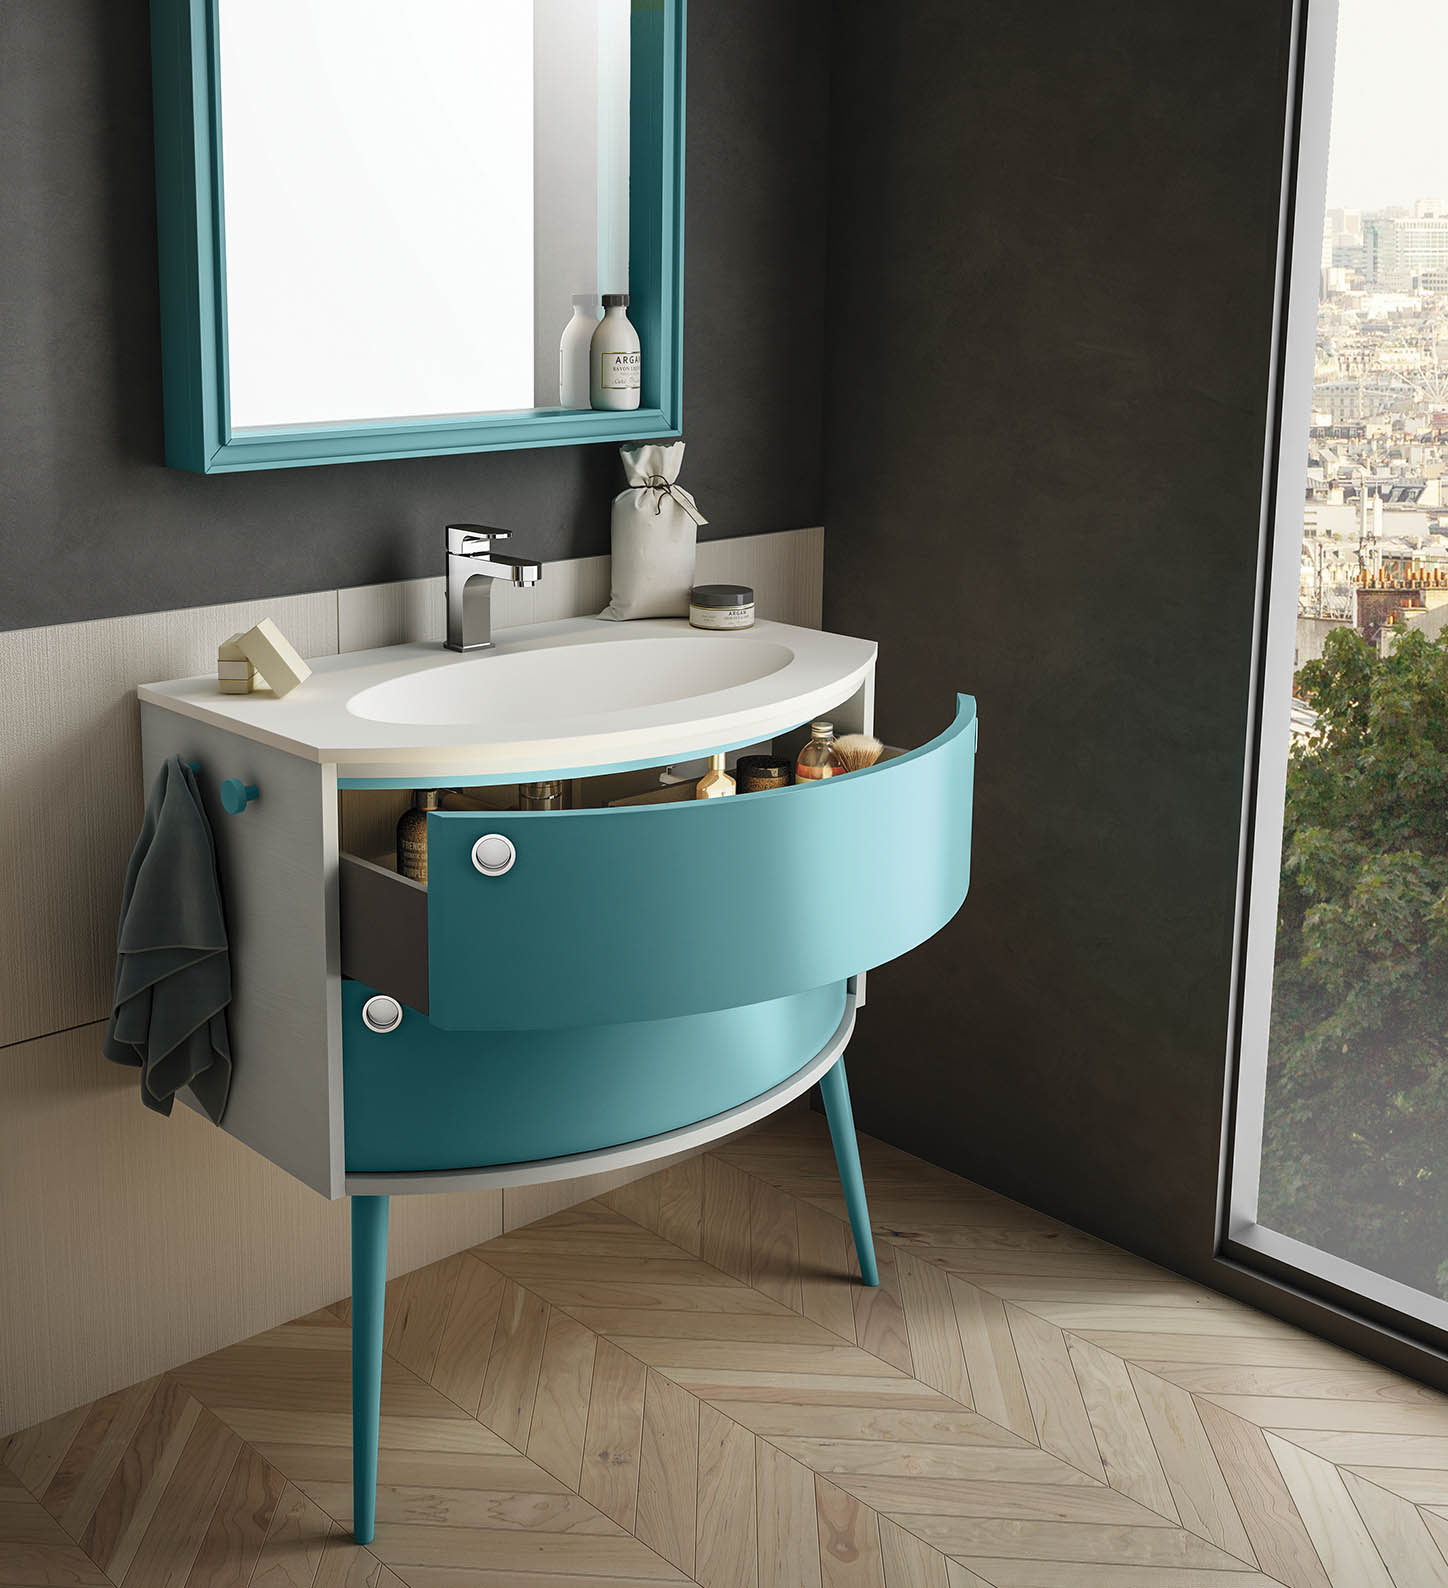 Beautiful Gran Tour Bagno Catalogo Pictures - New Home Design 2018 ...